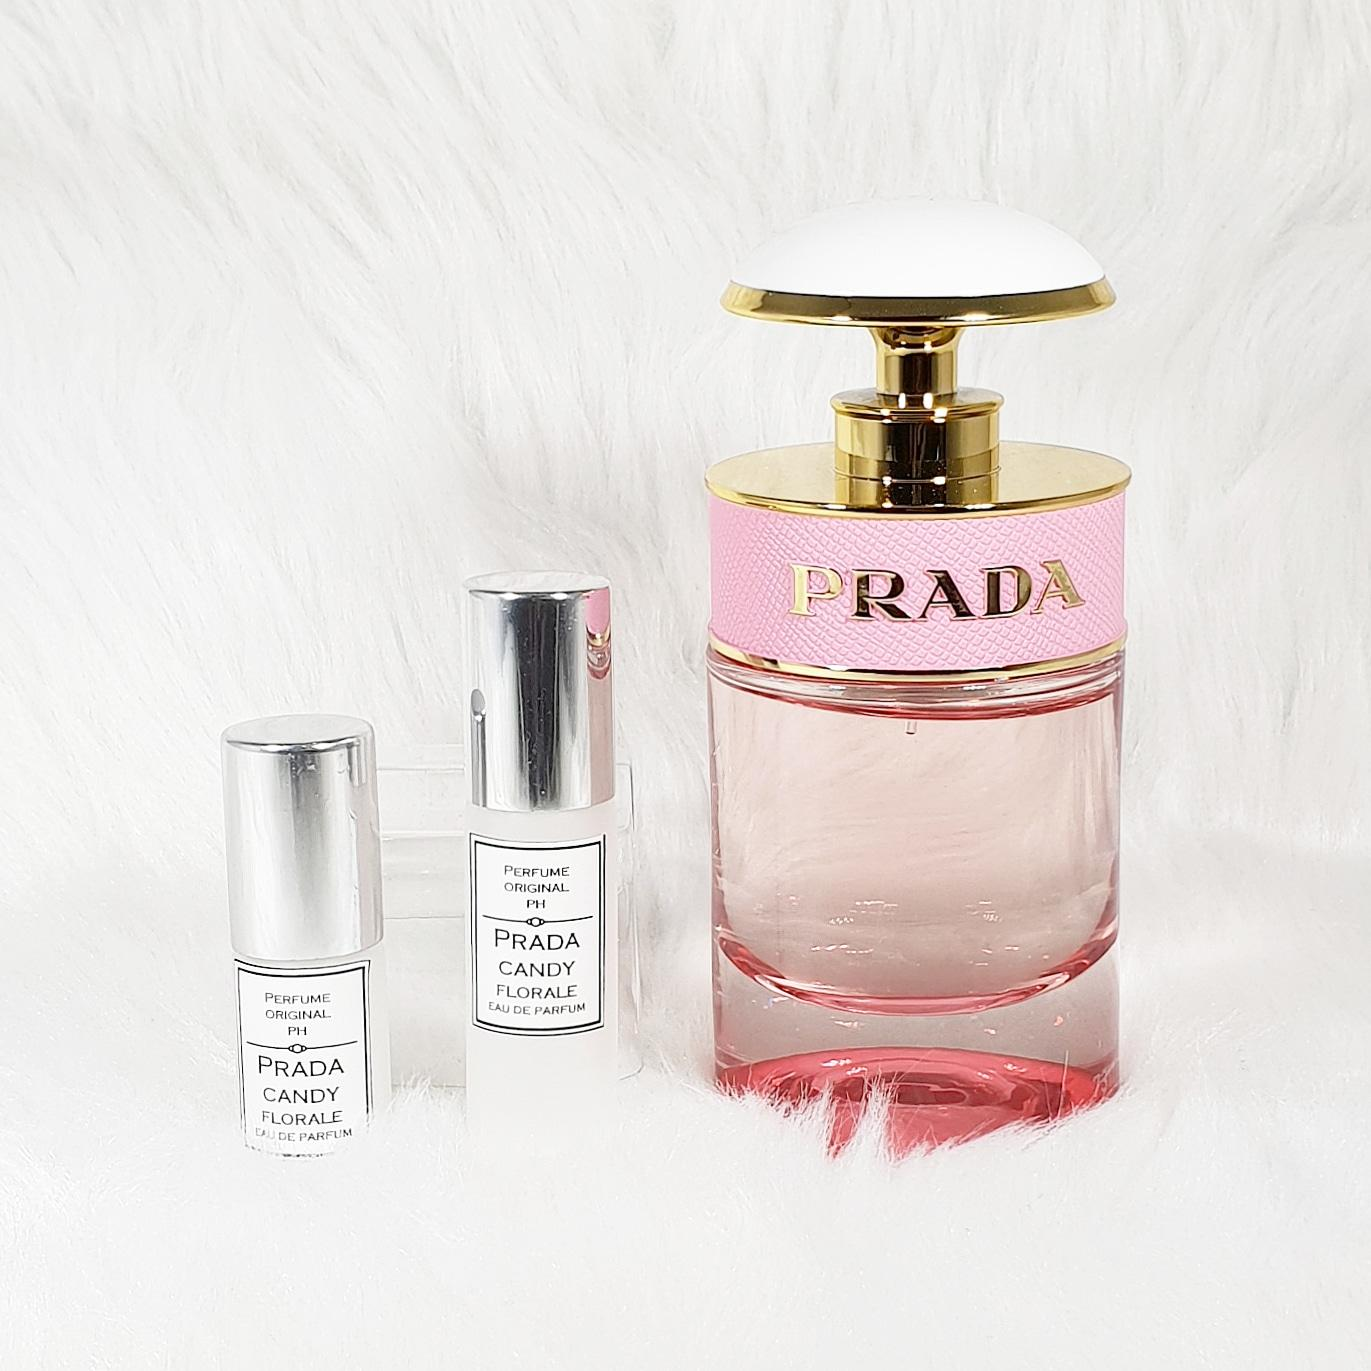 7362428a Prada Candy Florale 3ml perfume decant in white rollerball bottle (left  most)